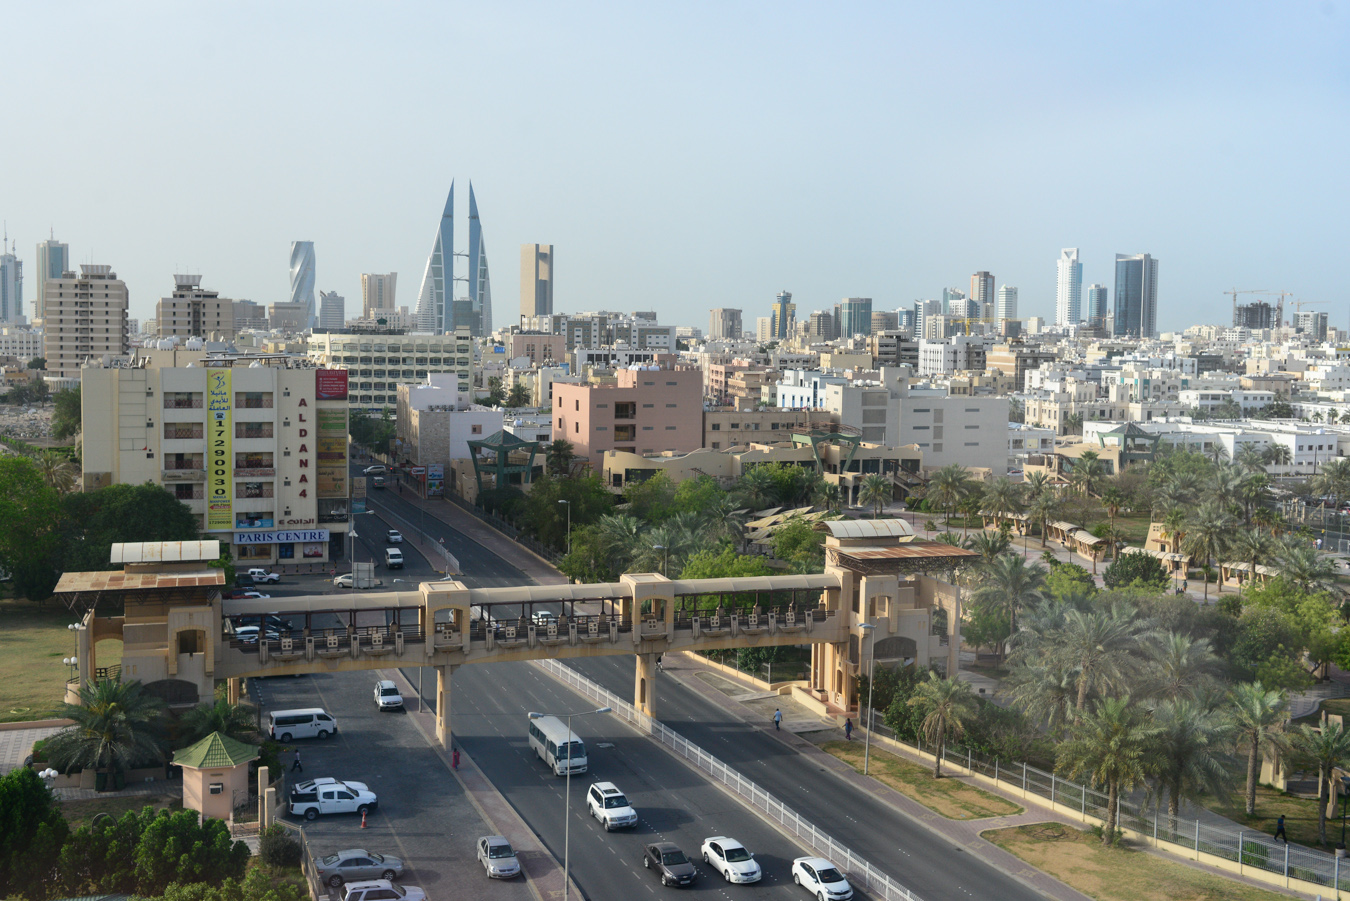 View of the city of Manama in Bahrain